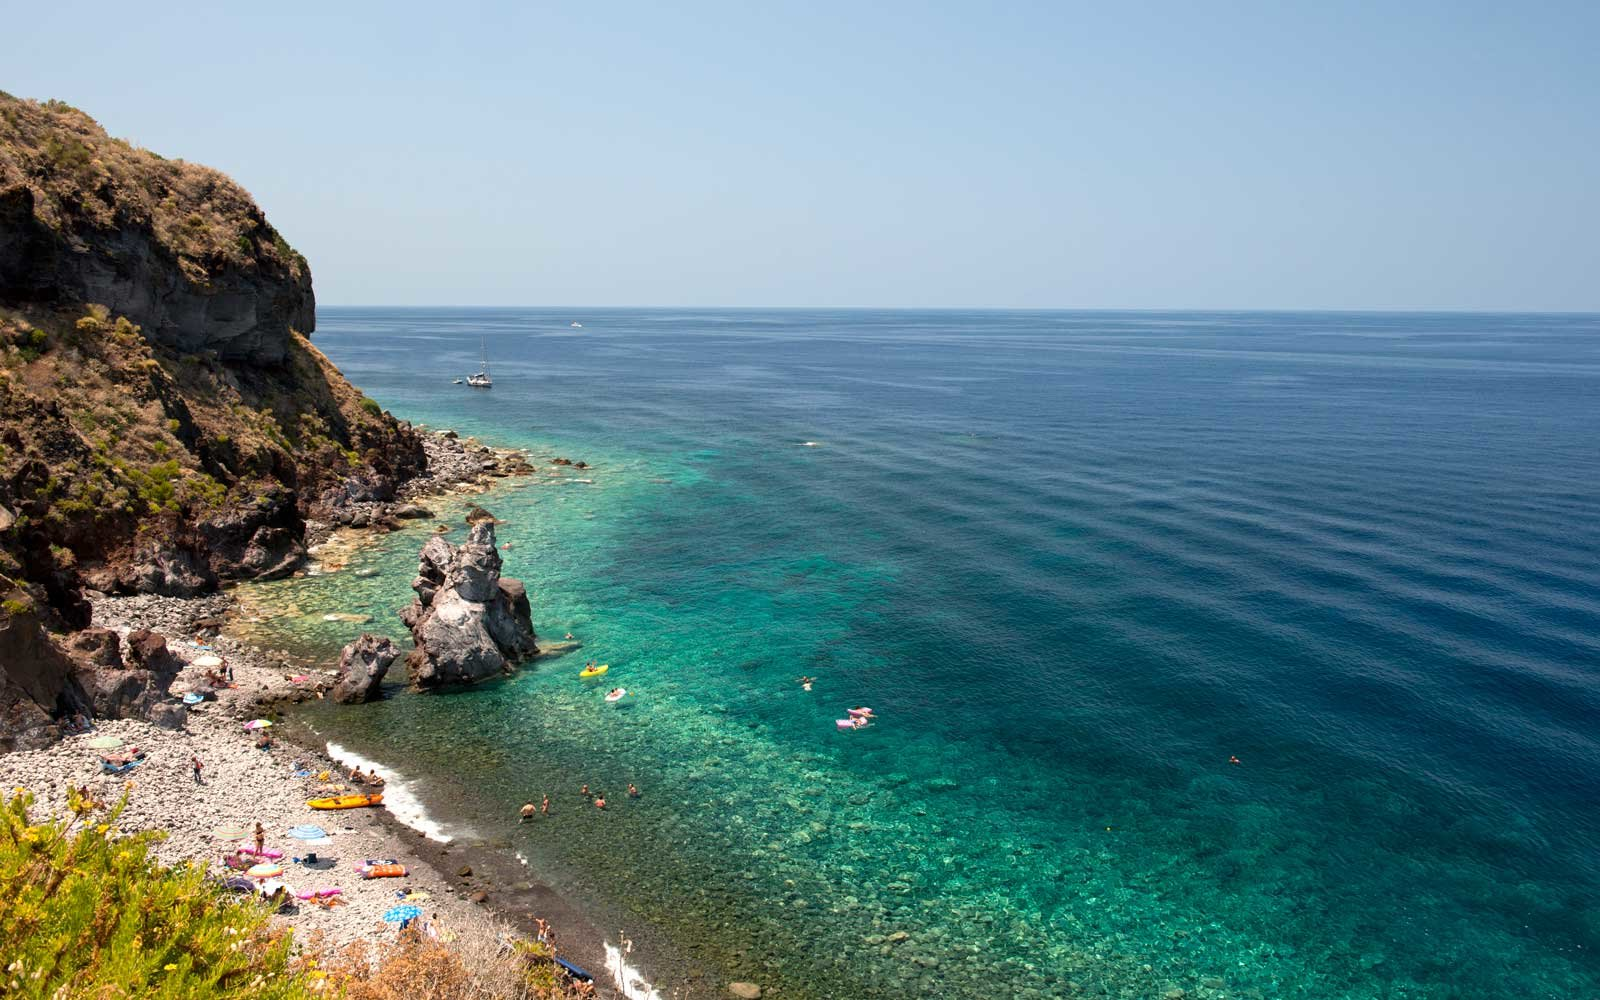 A rocky beach near Malfa on the island of Salina, The Aeolian Islands, Italy